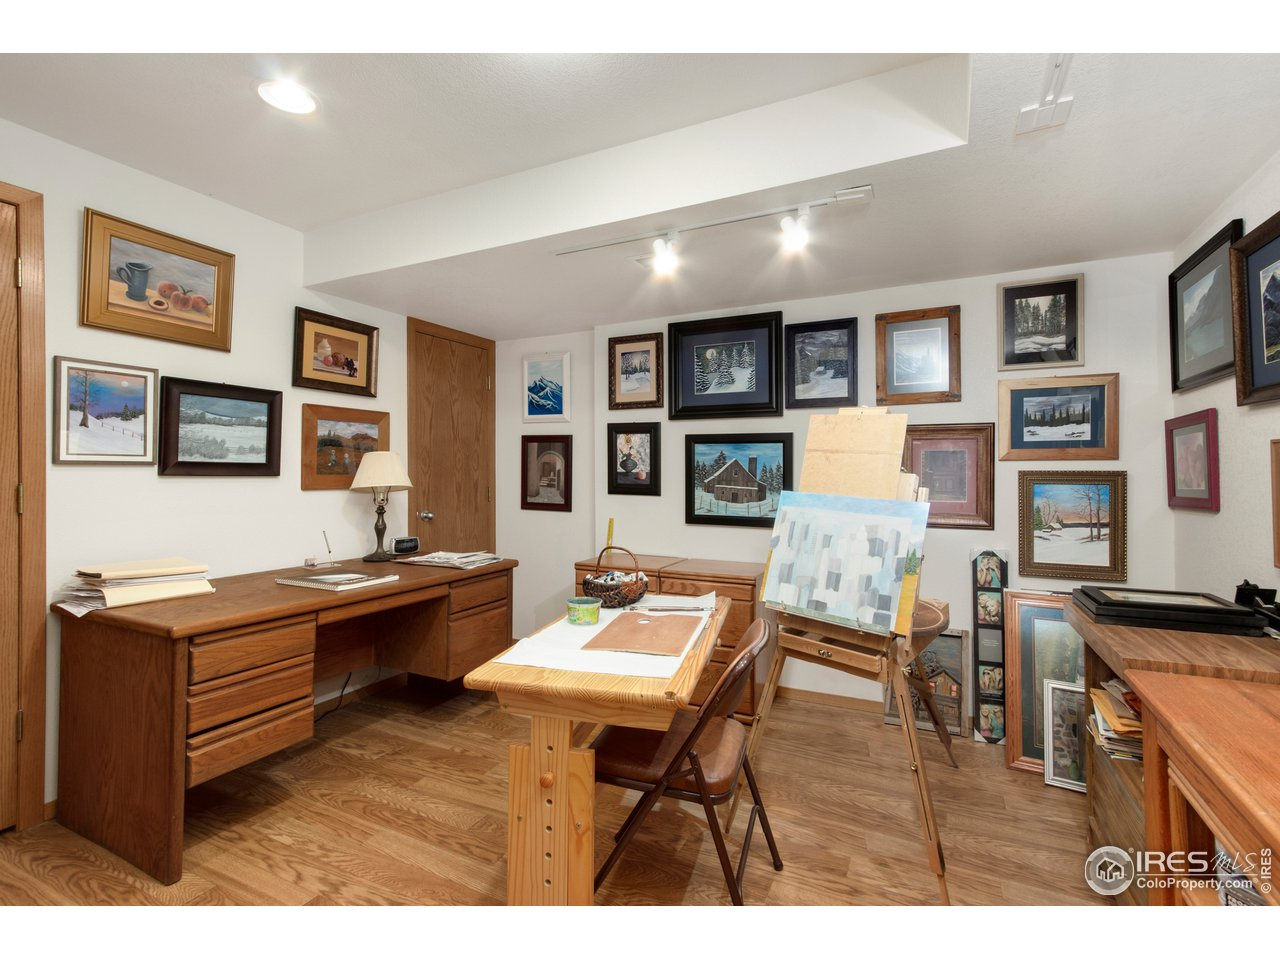 Basement flex space--could be part of bedroom suite or office space!